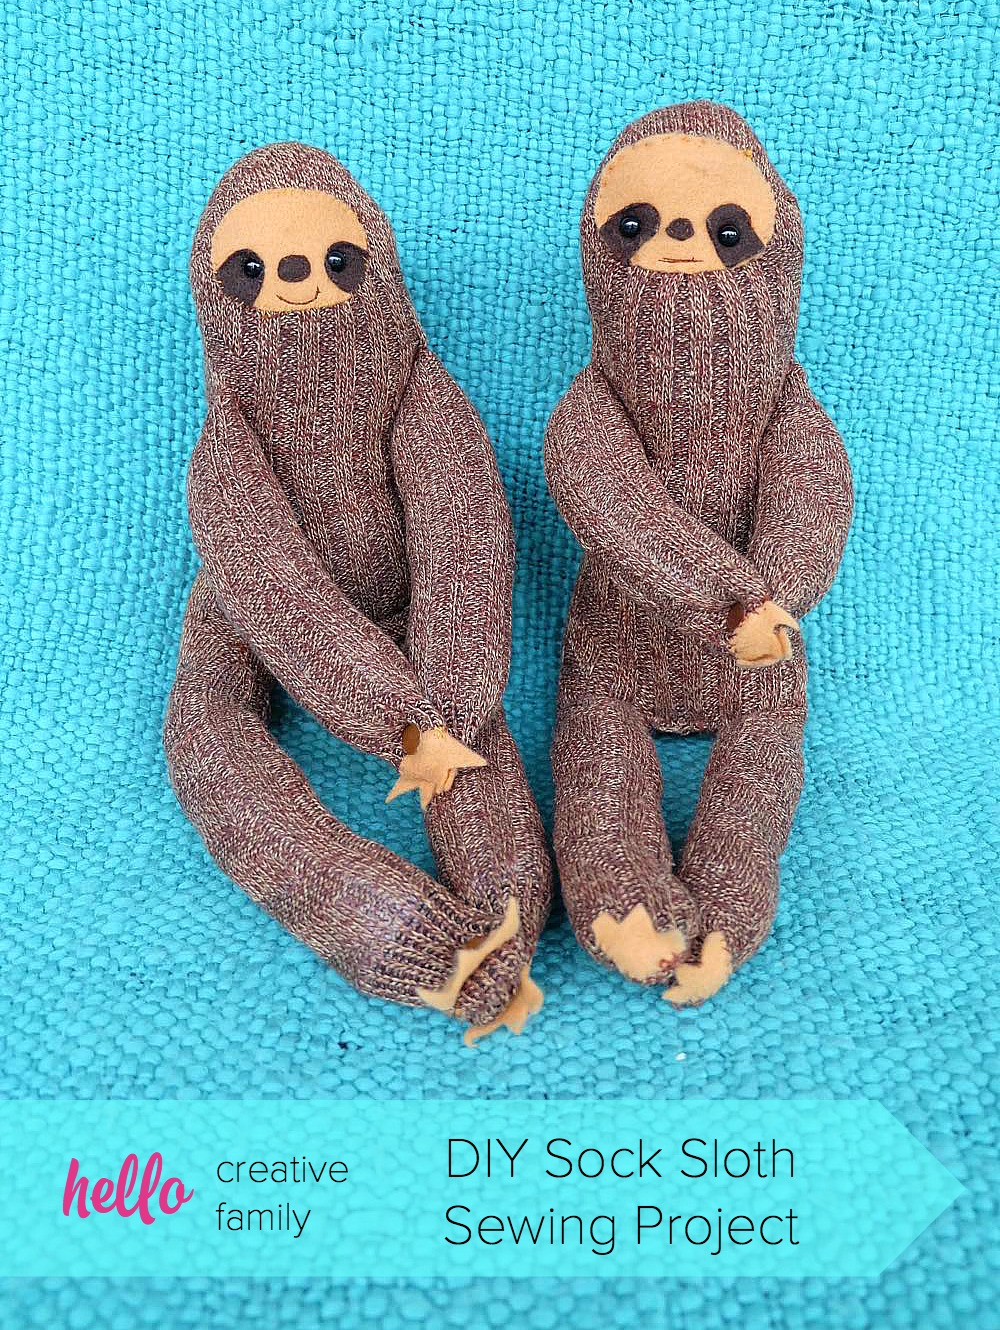 How sweet our these little DIY Sock Sloths? This would be the cutest handmade gift idea for a child or baby. Their hands have snaps so they can hang! DIY Sock Sloth Sewing Project on Hello Creative Family.